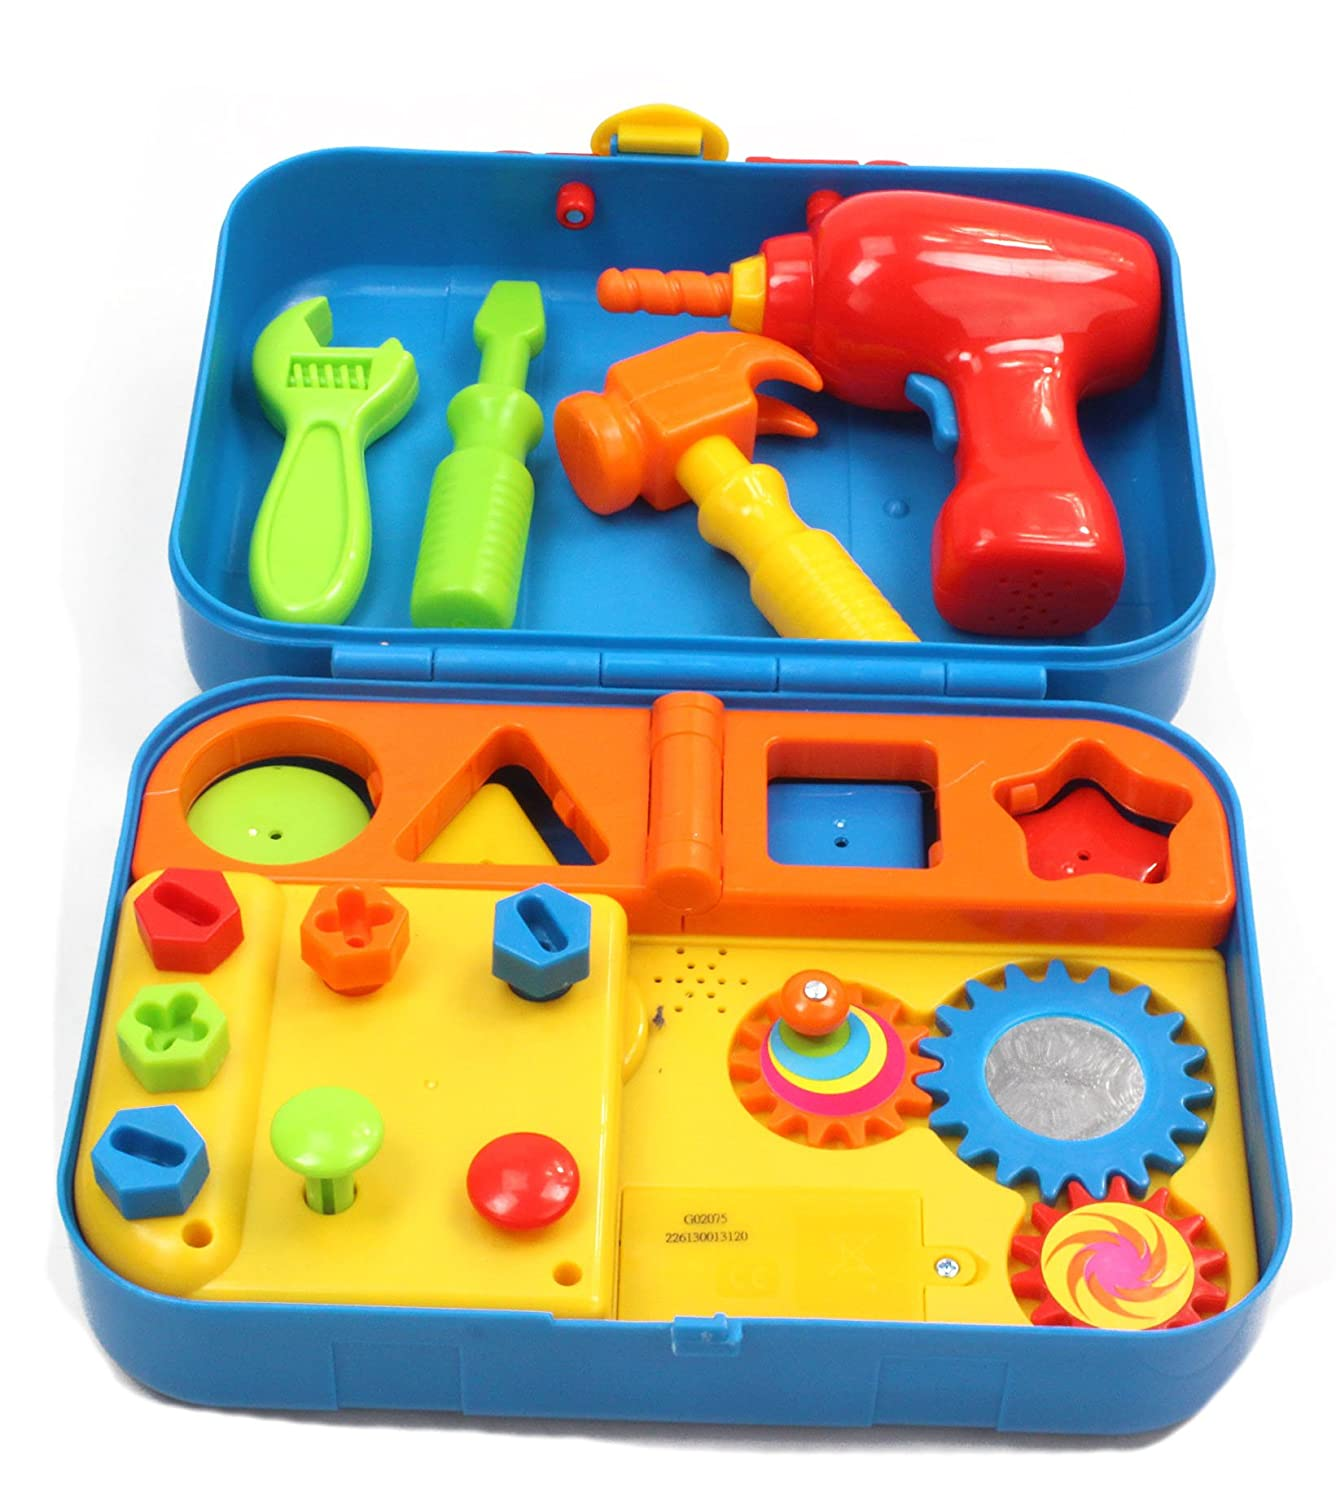 Toys For Boys Age 18 : Kidoozie cool toys tool set includes audio responses to